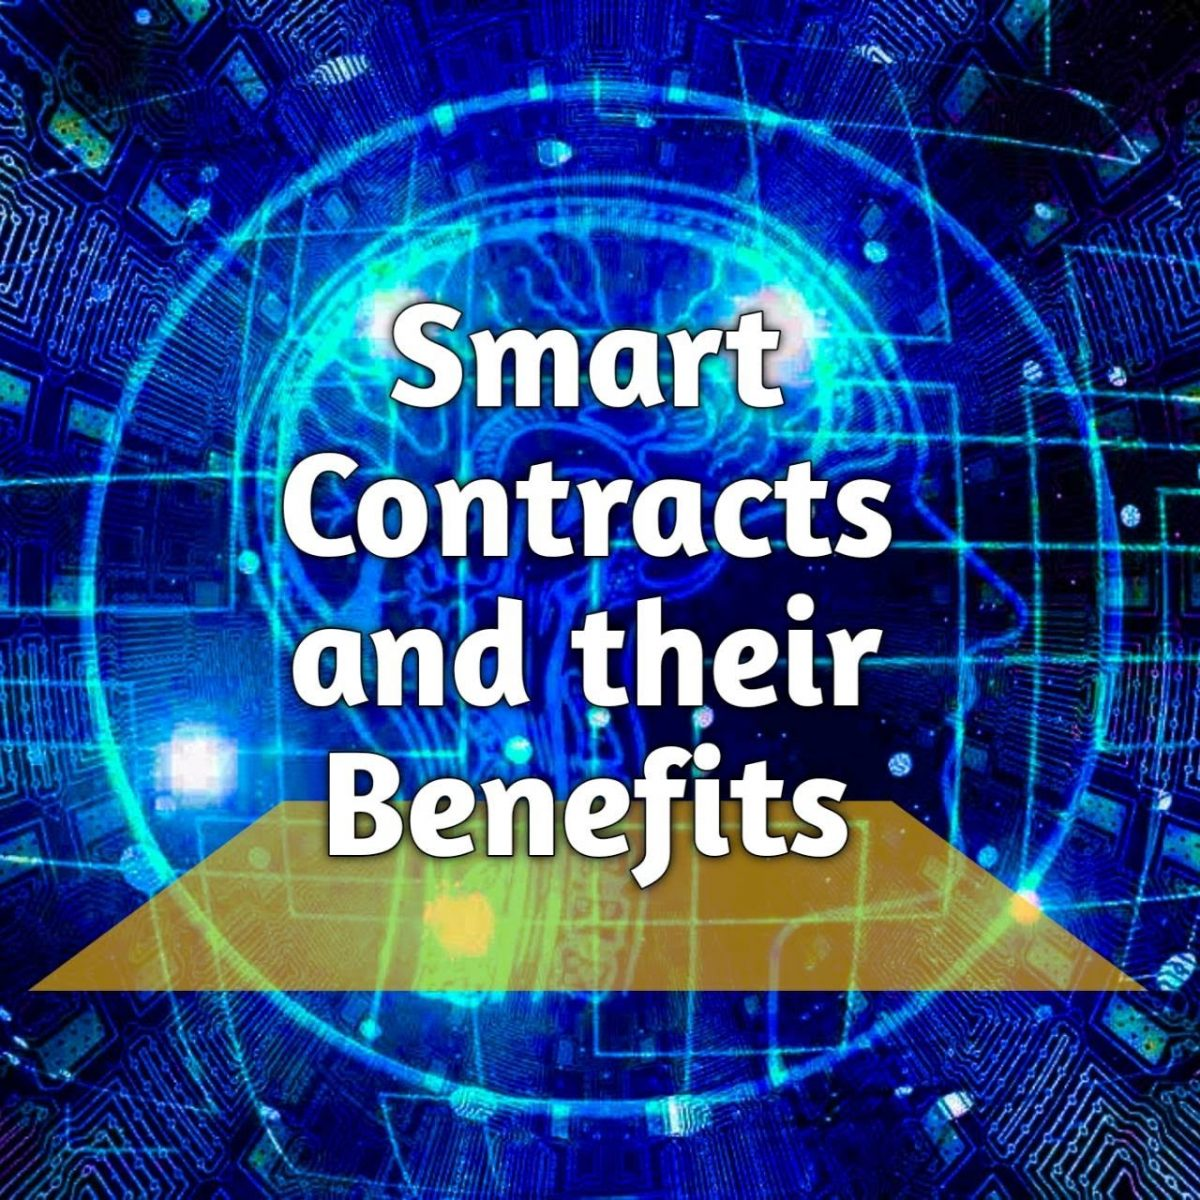 Smart Contracts and their Benefits, Vitaly Tennant, VitalyTennant.com